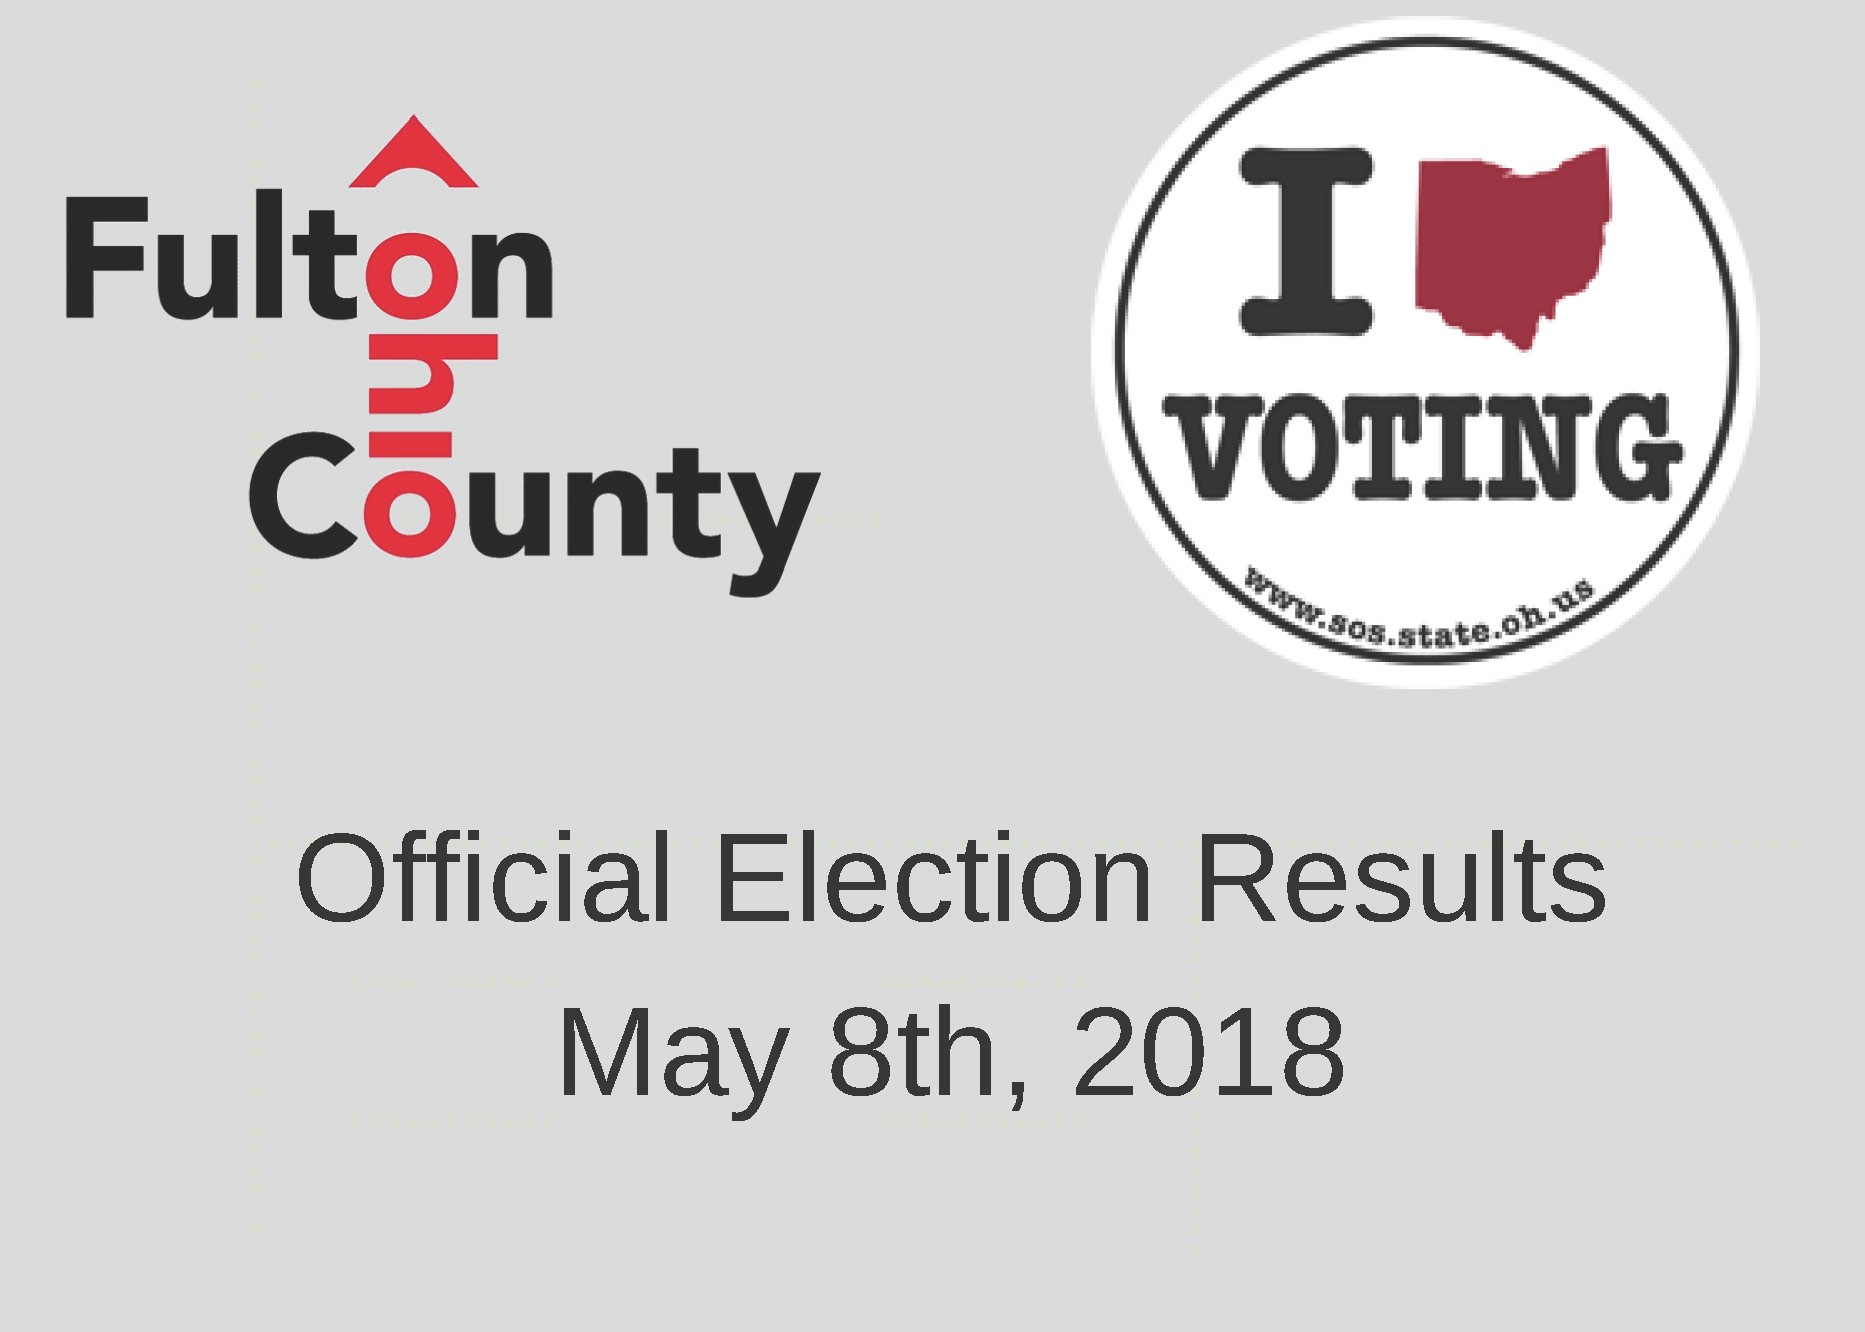 Official Election Results May 8th, 2018 Promotional Image